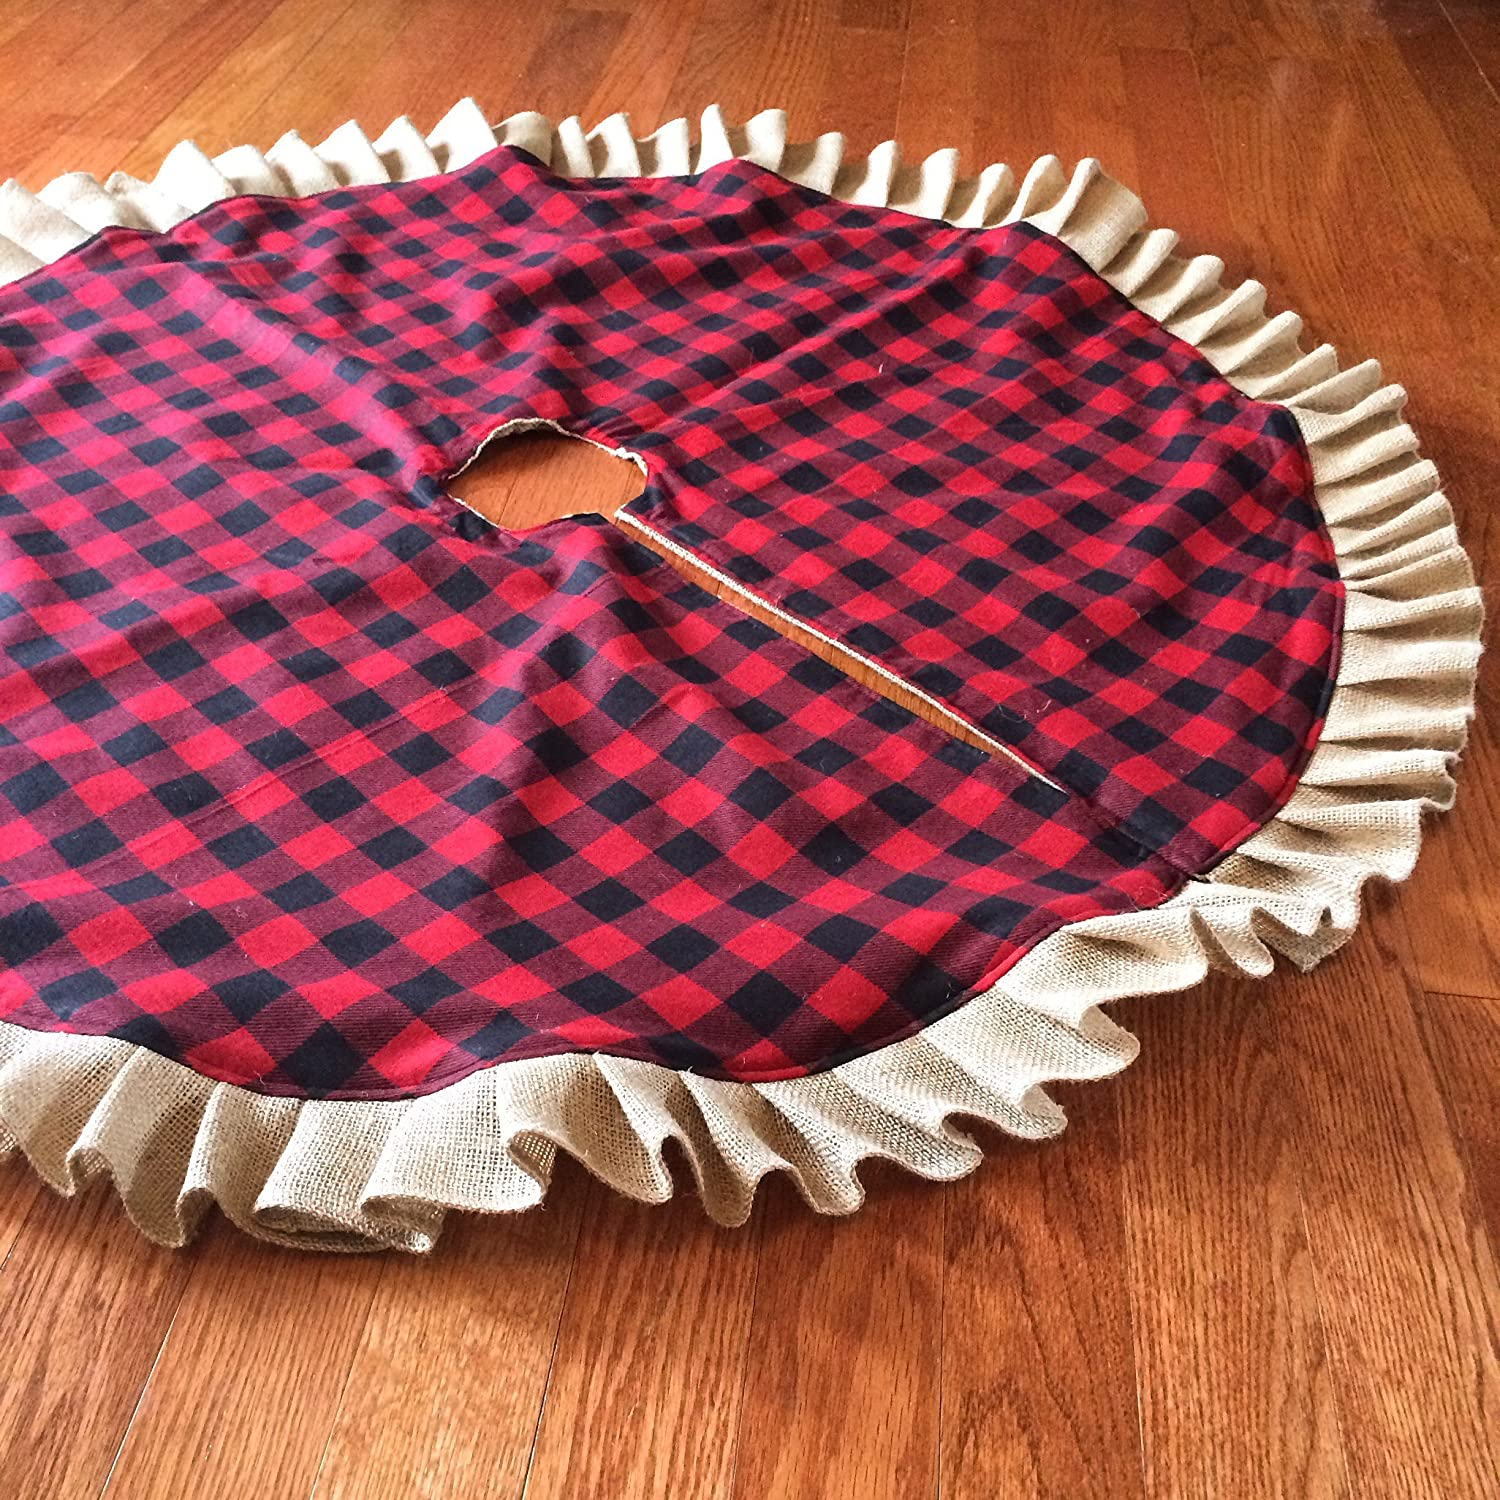 Buffalo Plaid & Natural Burlap Ruffled Christmas Tree Skirt